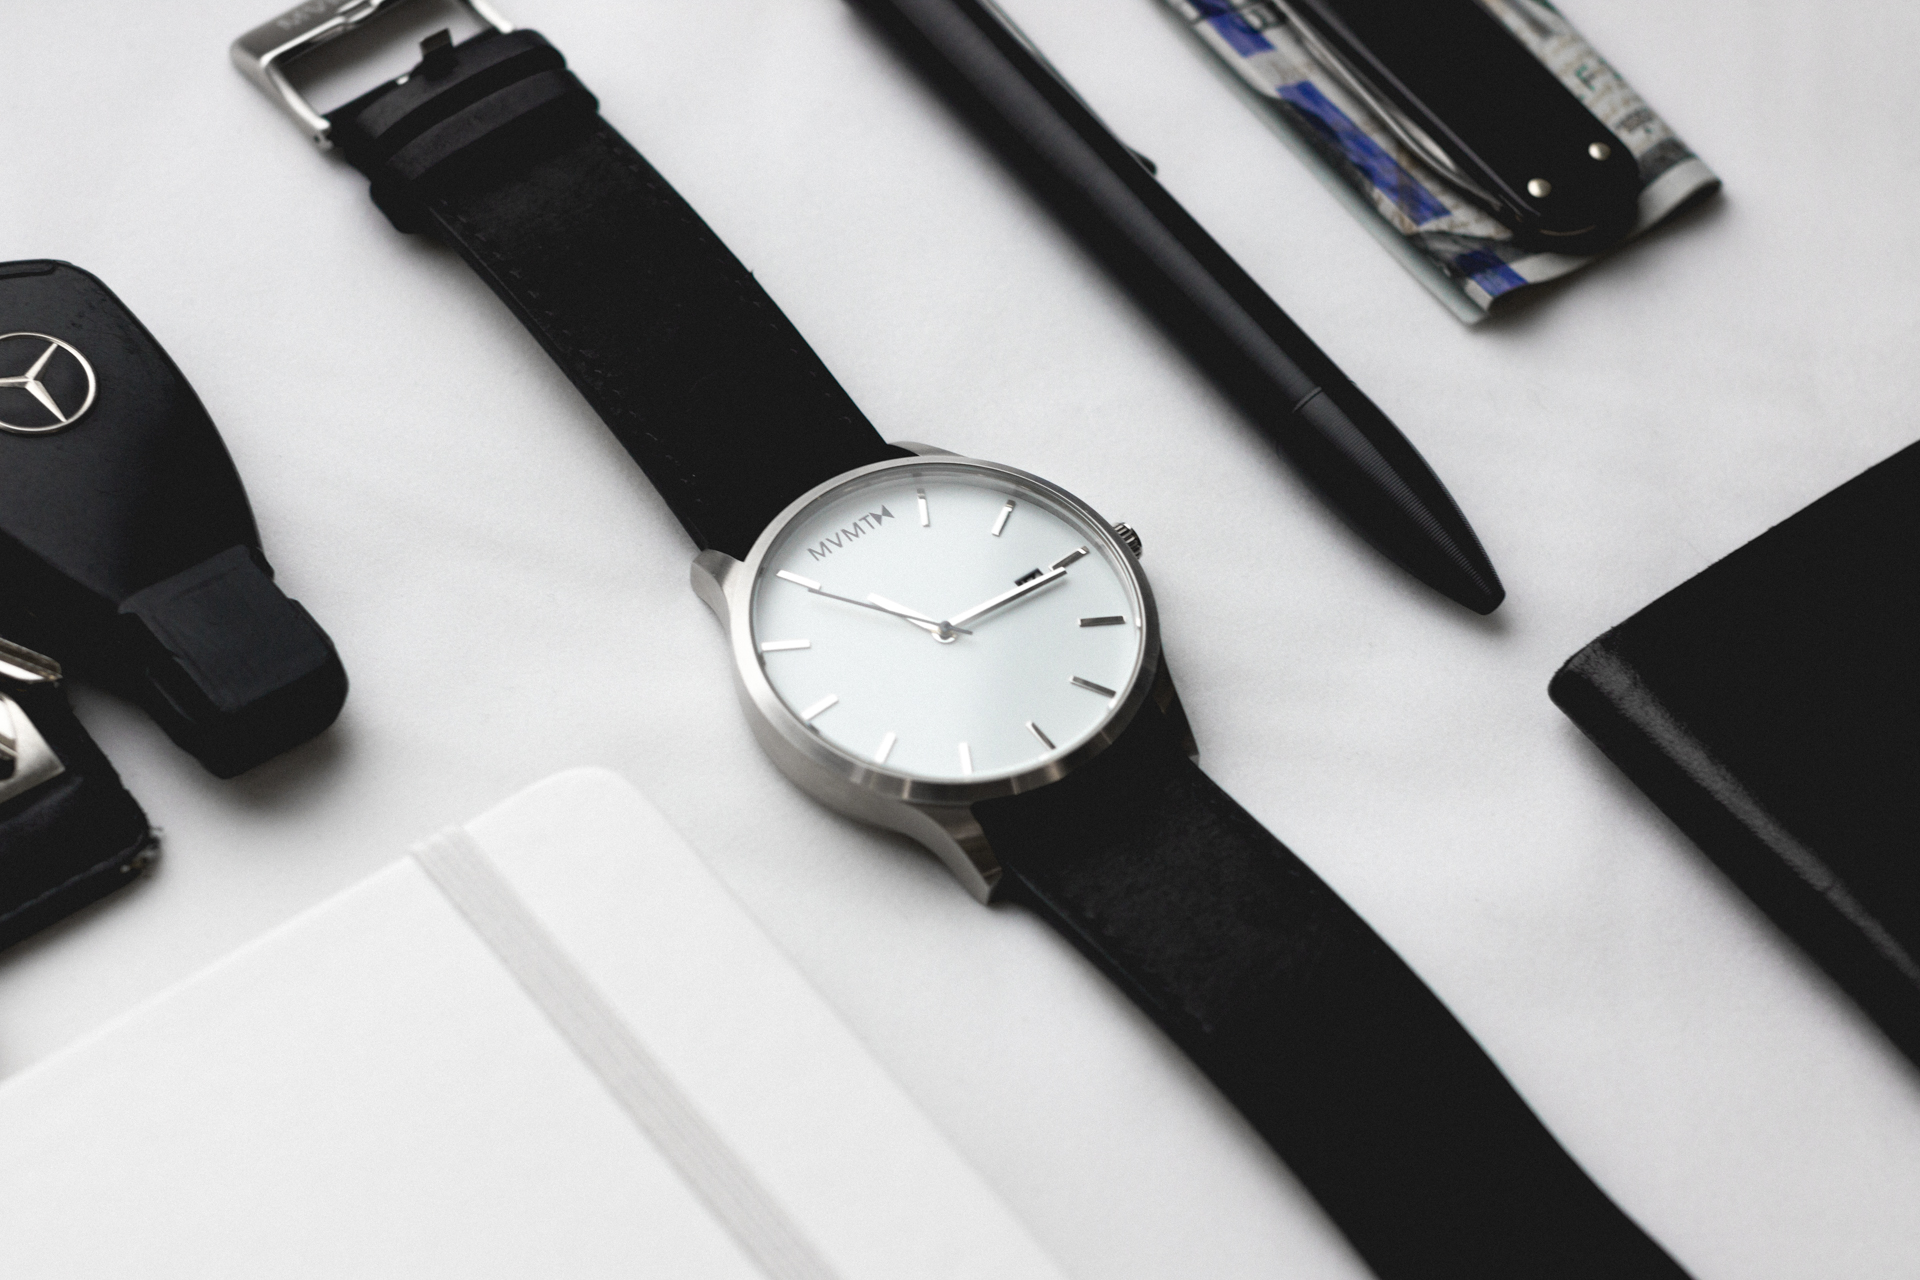 watches simplistic be without offering high tag for price different mileneal simple go should elegant your styles online that the colours pause and to are